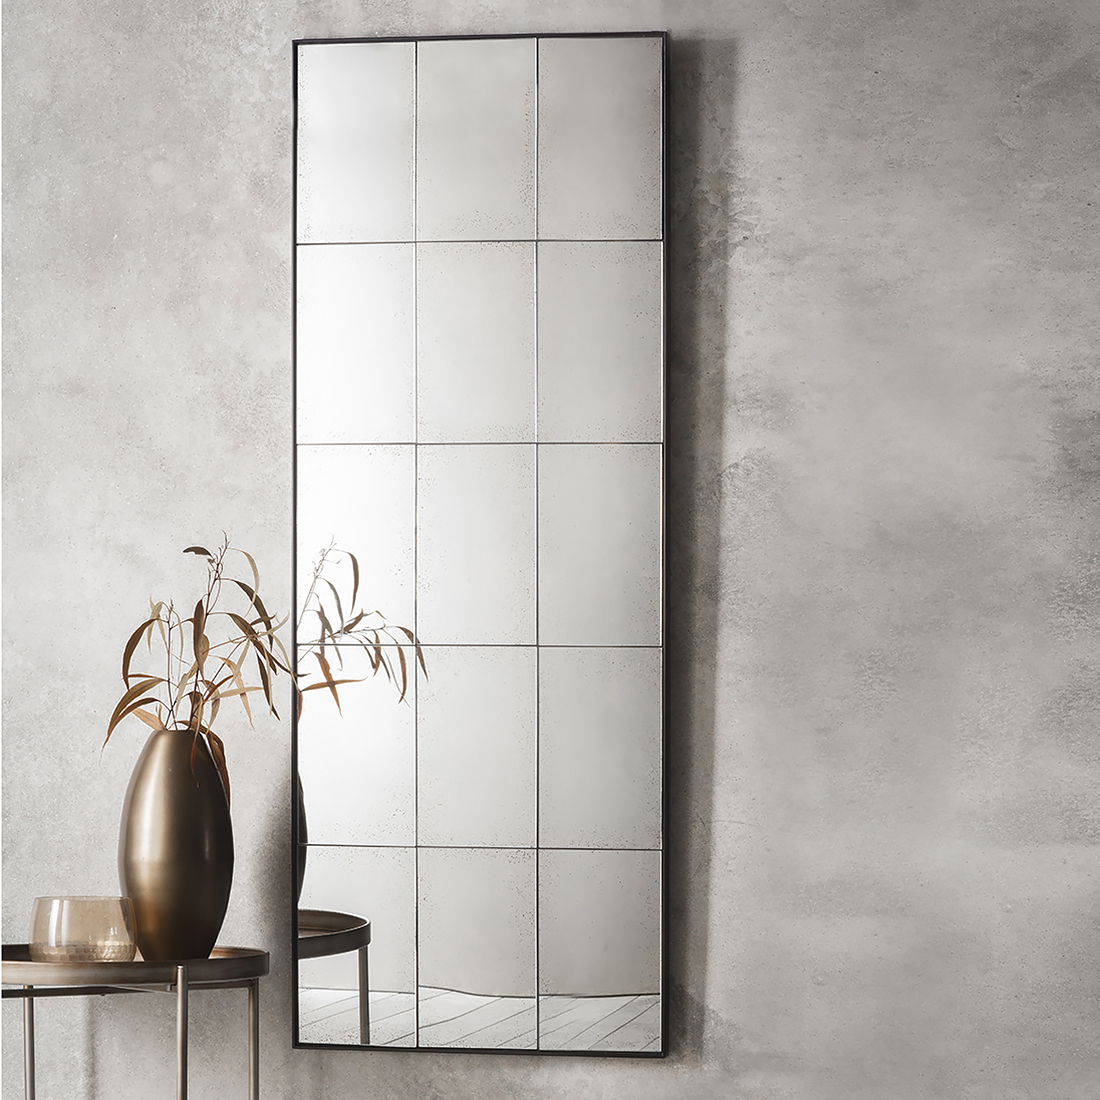 Trendy Rectangular Black Panel Mirror With Vintage Glass Within Black Rectangle Wall Mirrors (View 15 of 20)